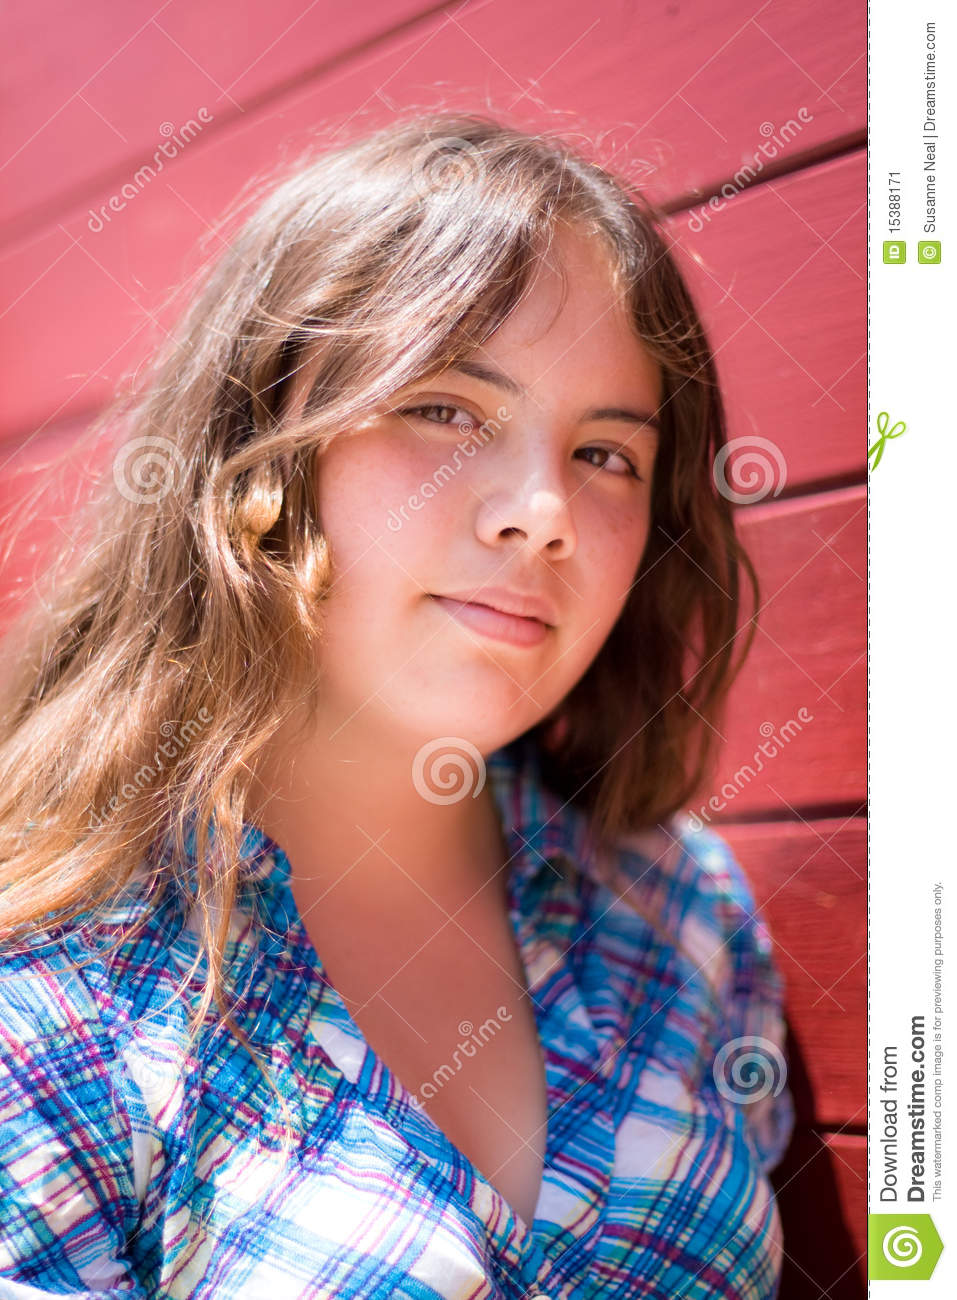 Vertical Portrait Of Pretty 14 Year Old Girl Stock Image